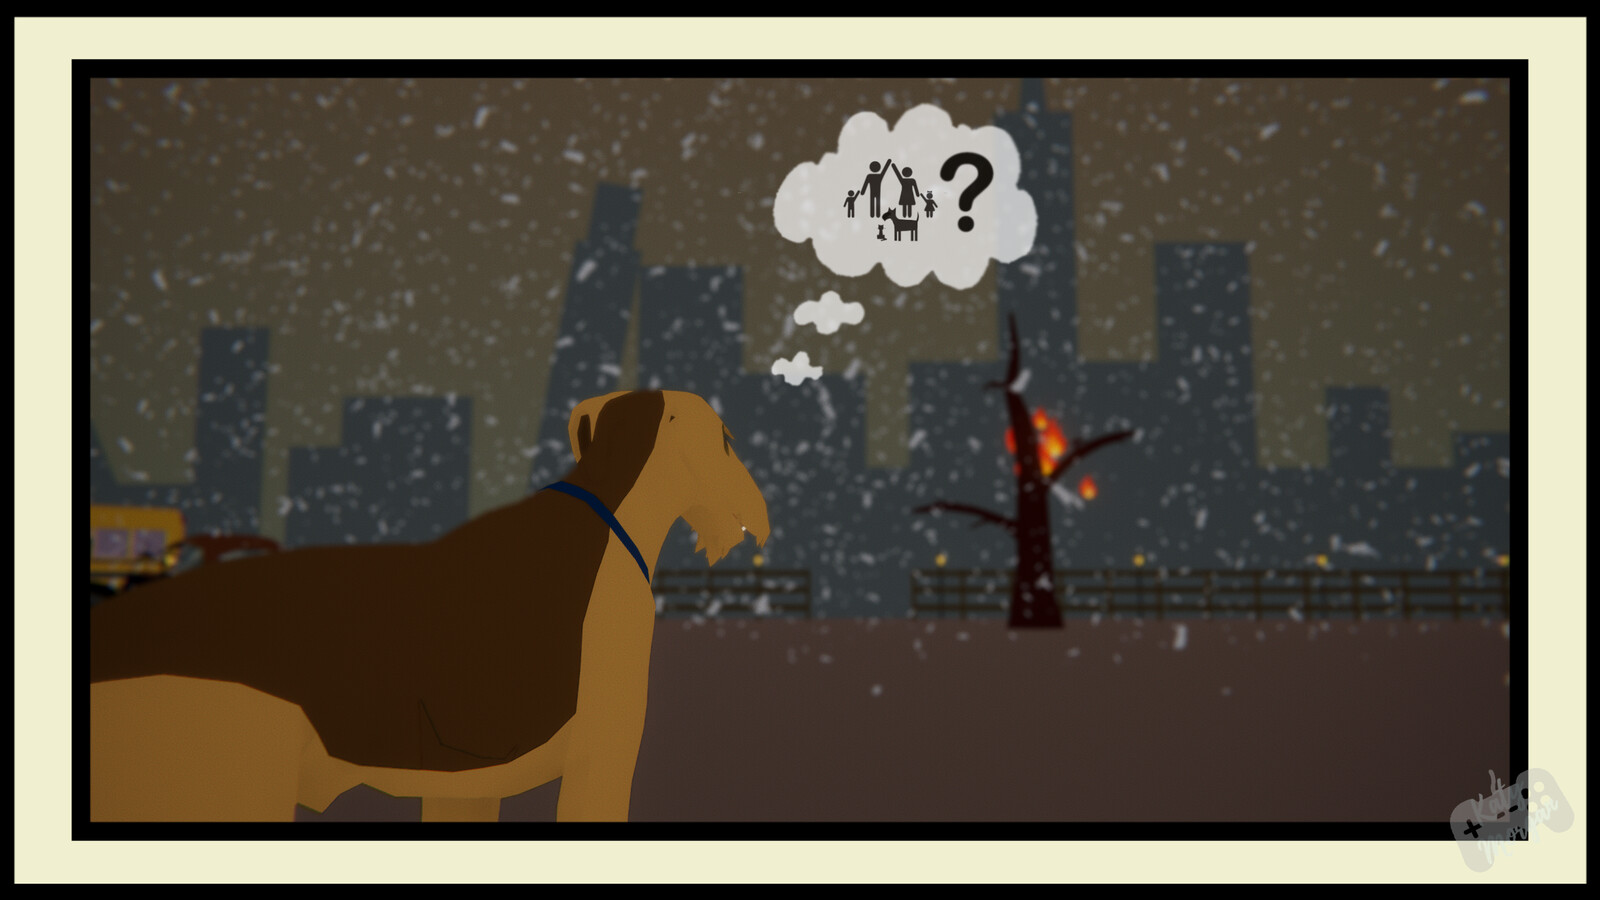 Time has passed and the dog has now found his way to town.  All assets here are 3D made by myself in Maya.